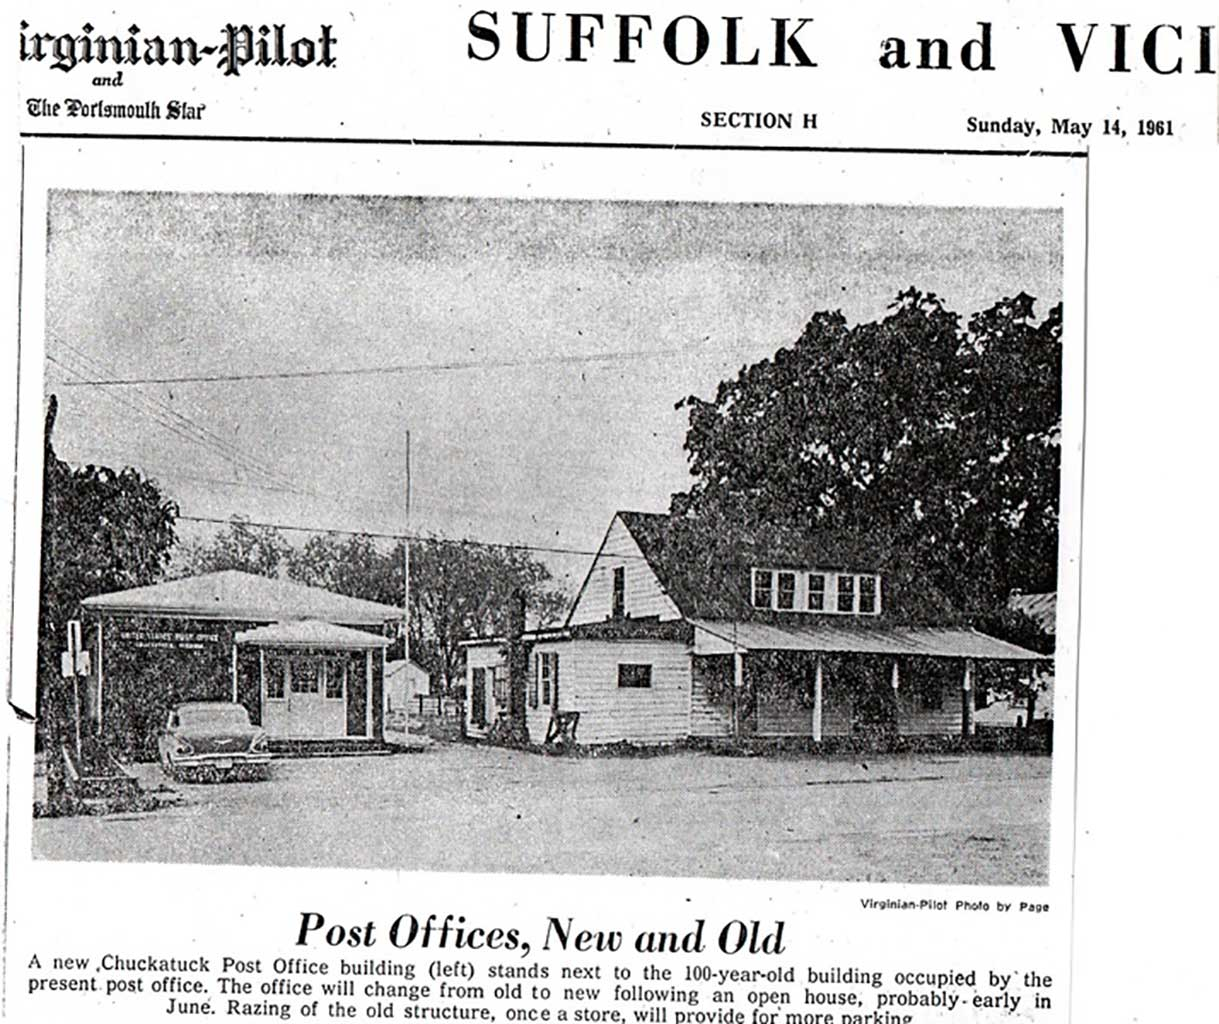 new-and-old-post-office-may-14-1961-virginian-pilot-img341